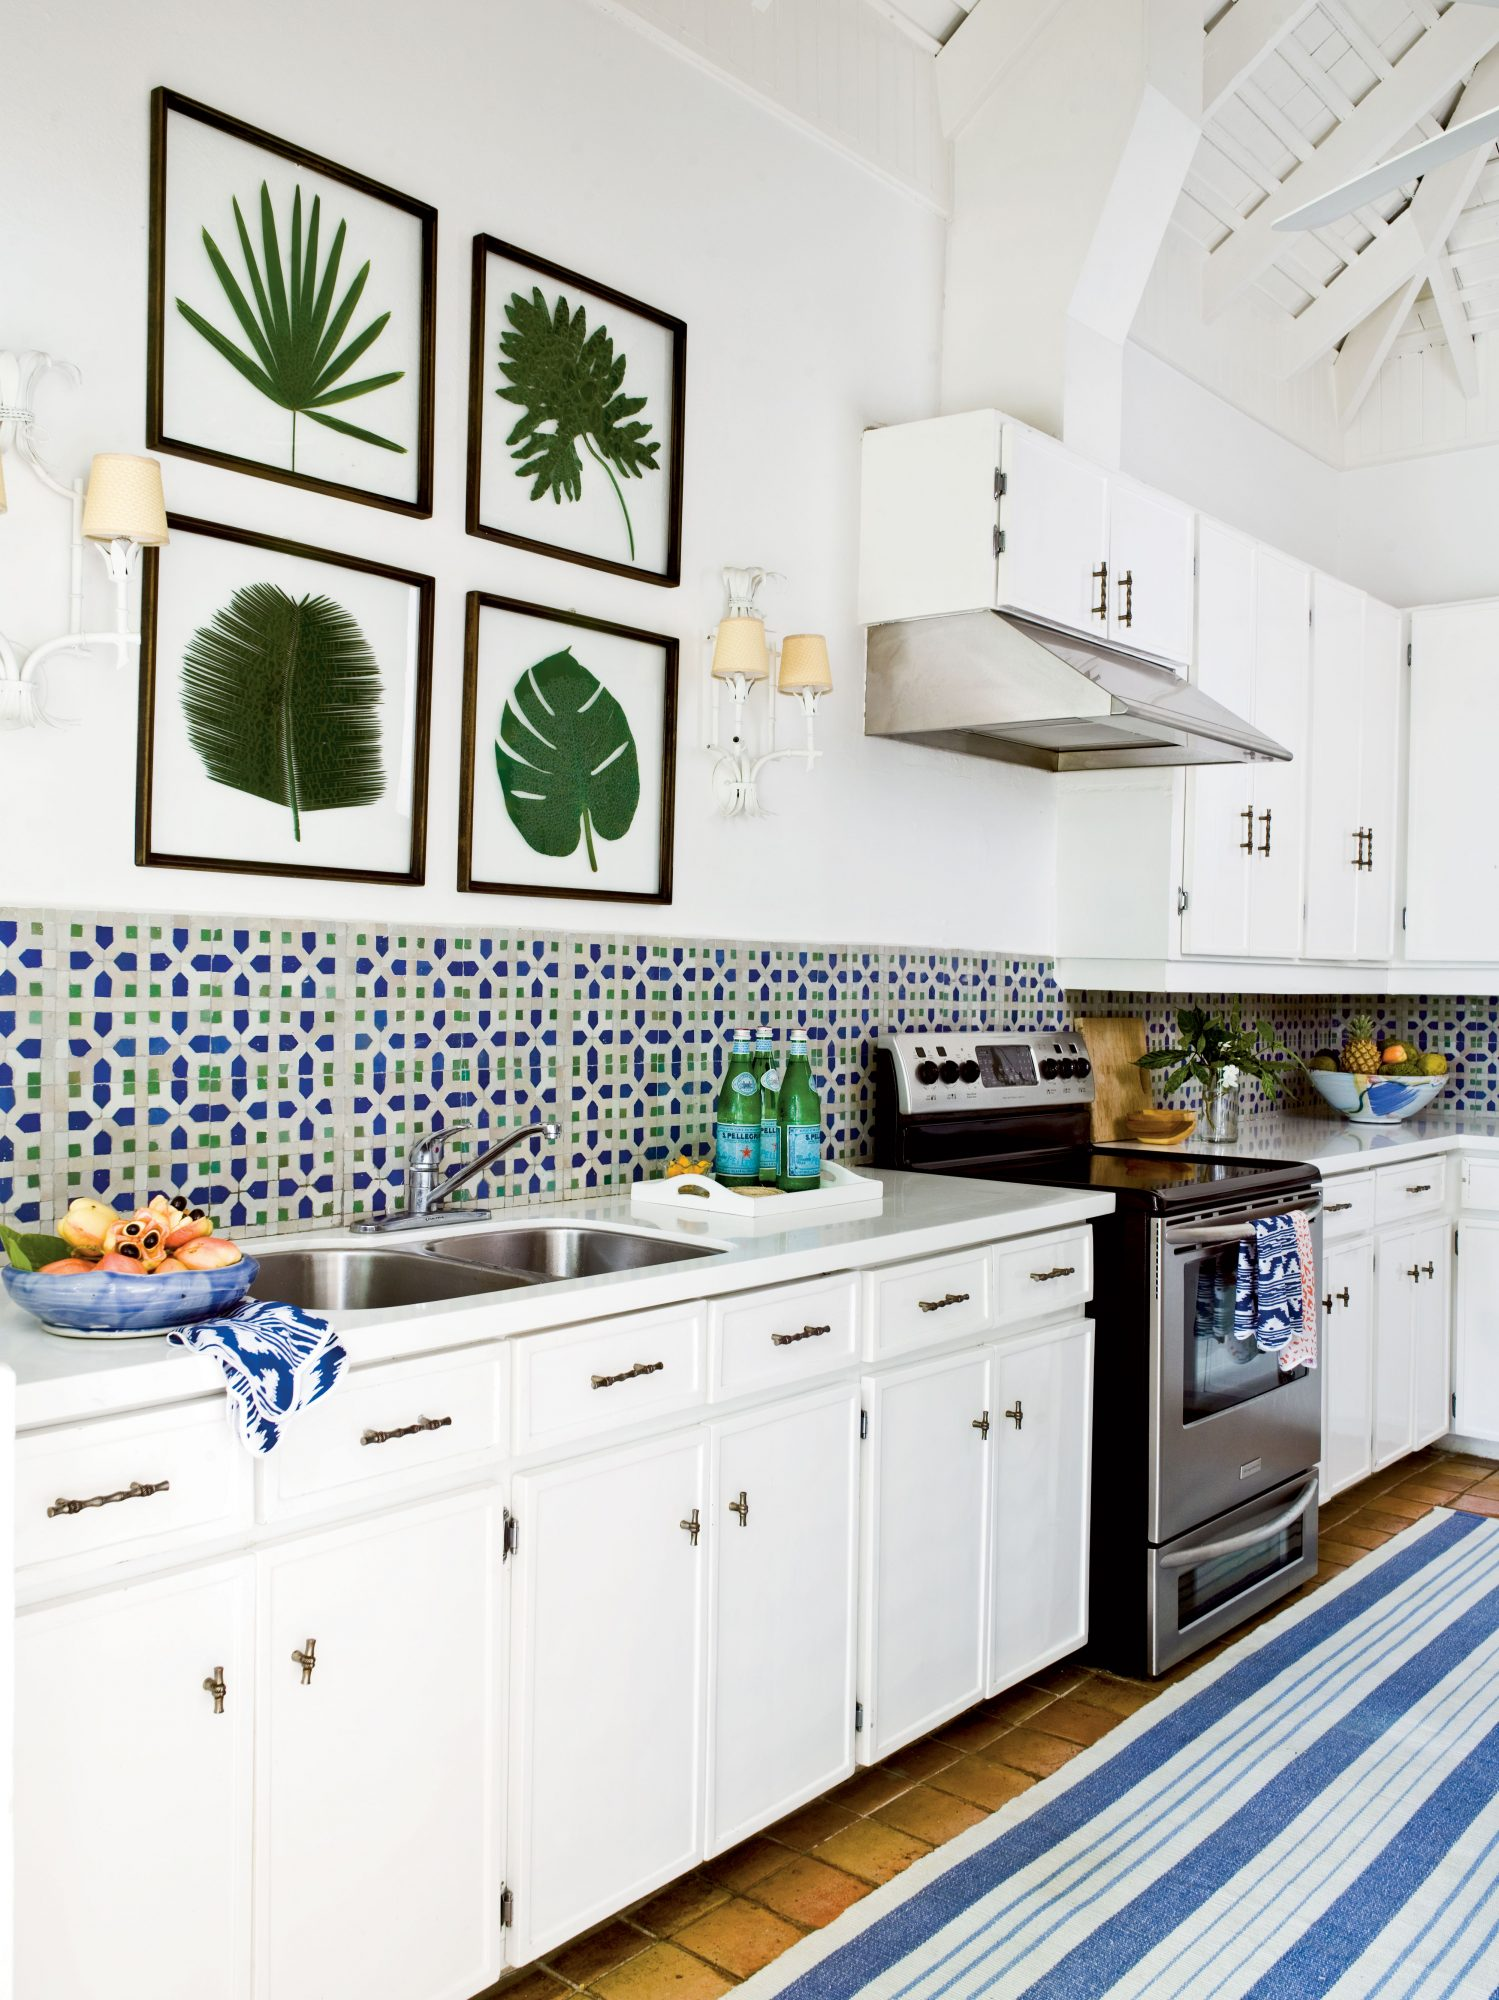 Keep the rest of the appliances and cabinetry simple to make the more decorative elements pop. Frame island fronds for an inexpensive D.I.Y. project.